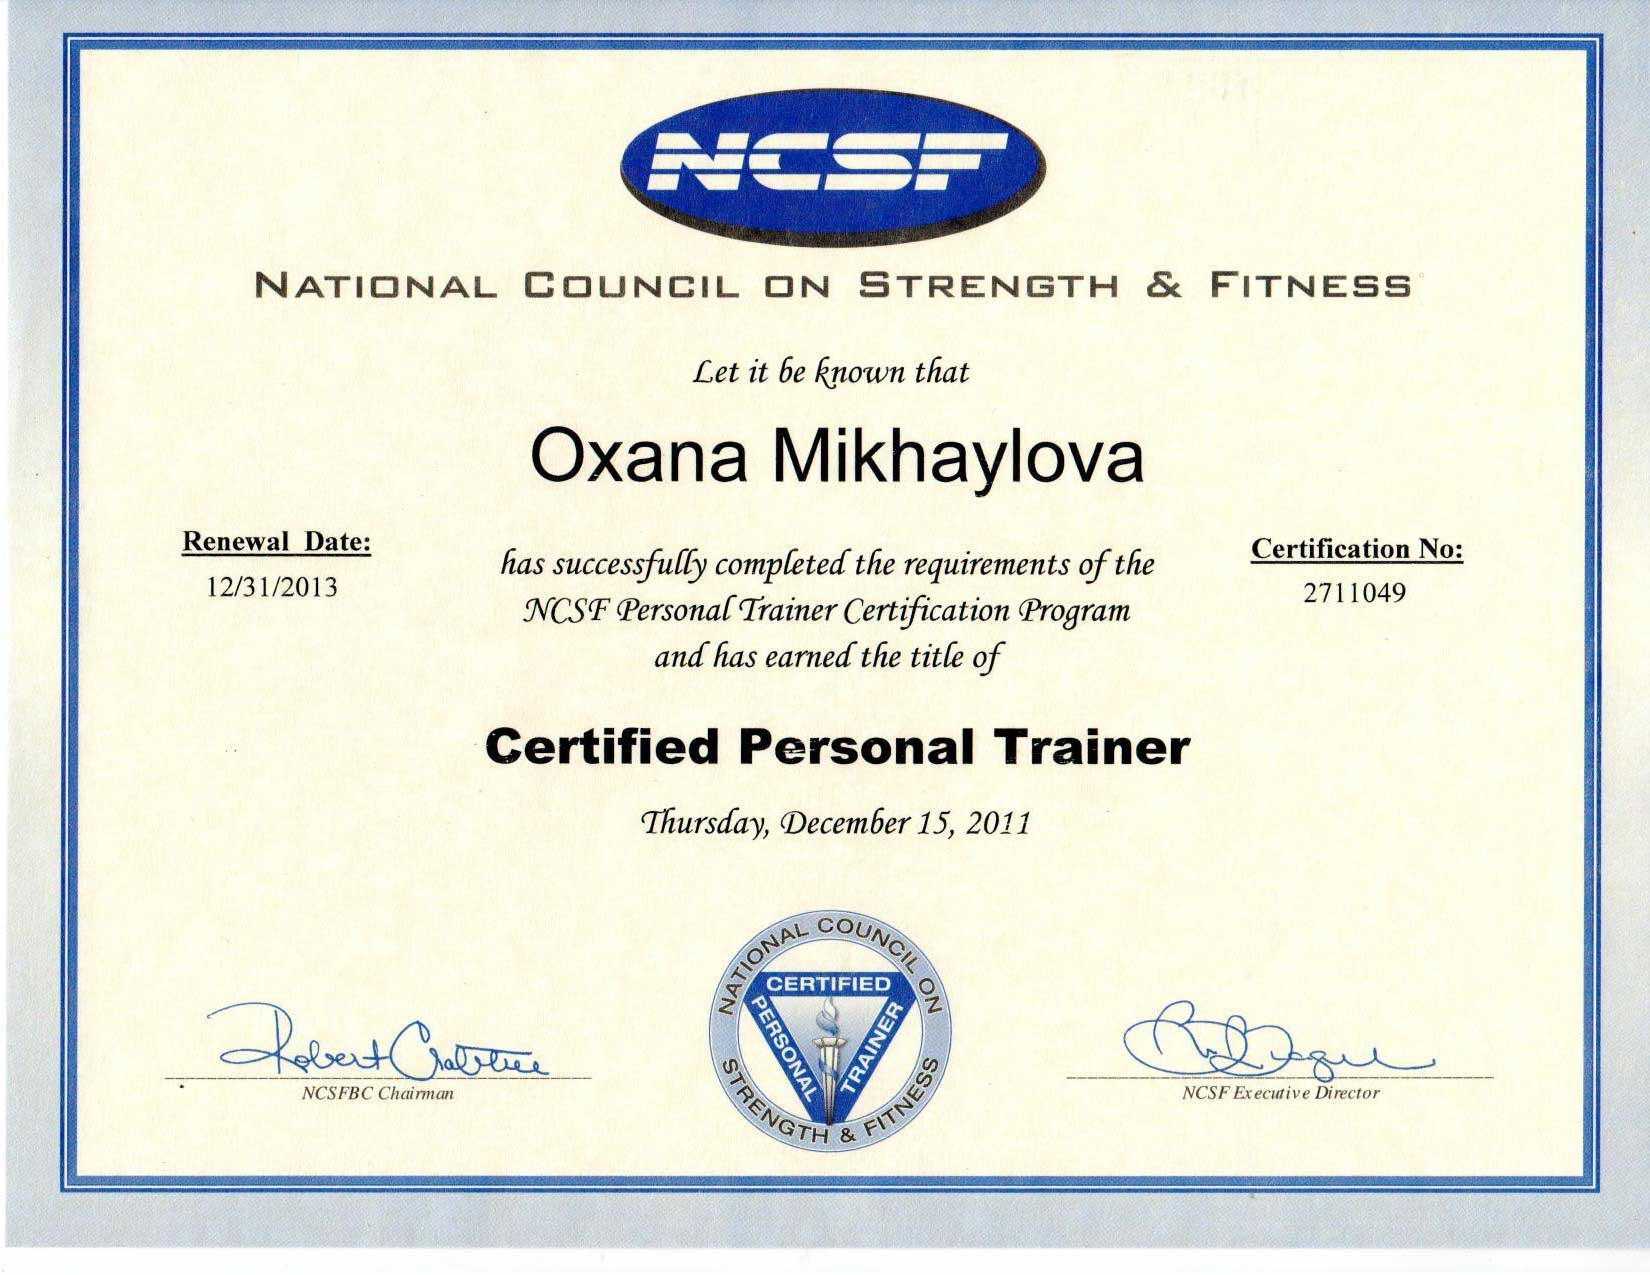 Credentials Train With Oxana